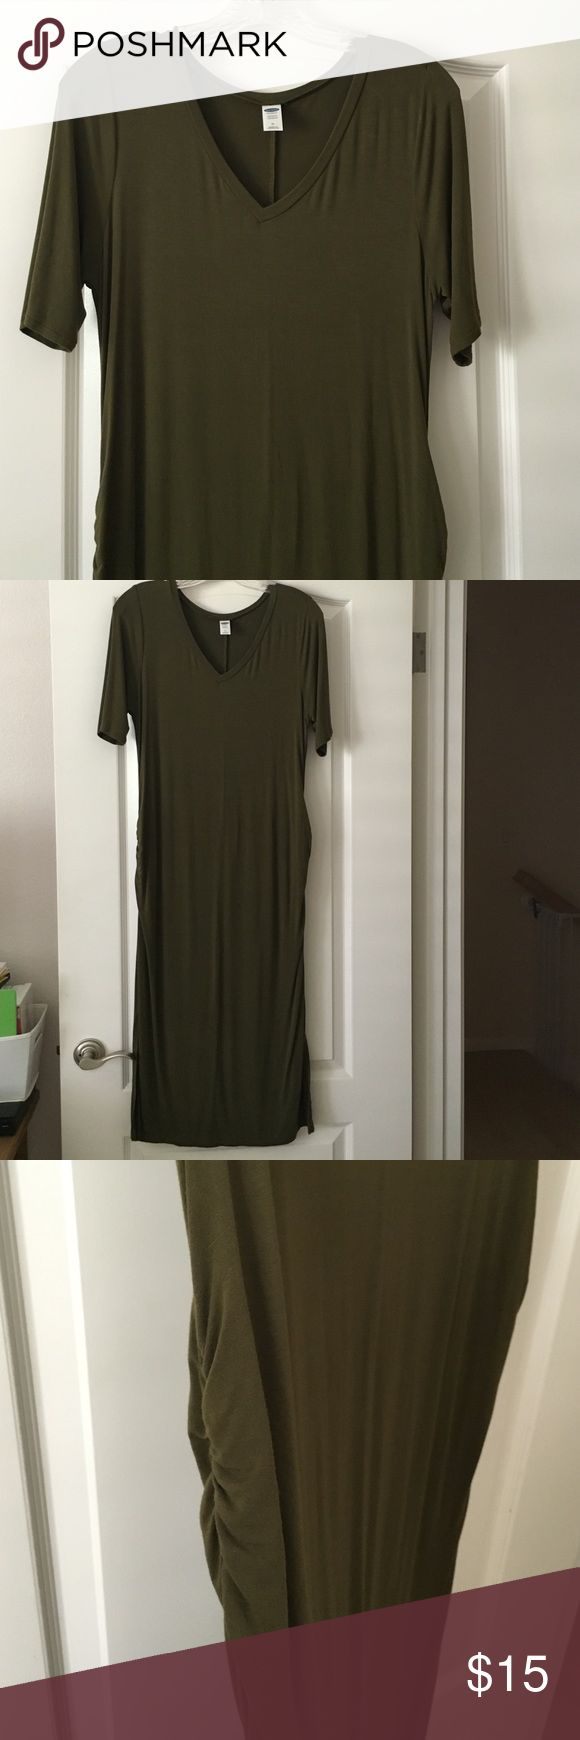 "Gap maternity dress Soft jersey fabric. Olive colored. Ruched sides. Wear at any point during pregnancy or even after. Looks great paired with ankle boots and some fun statement jewelry. Great piece for work. 46"" long. Small/modest slits run up both sides at the bottom. Old Navy Maternity Dresses Midi"